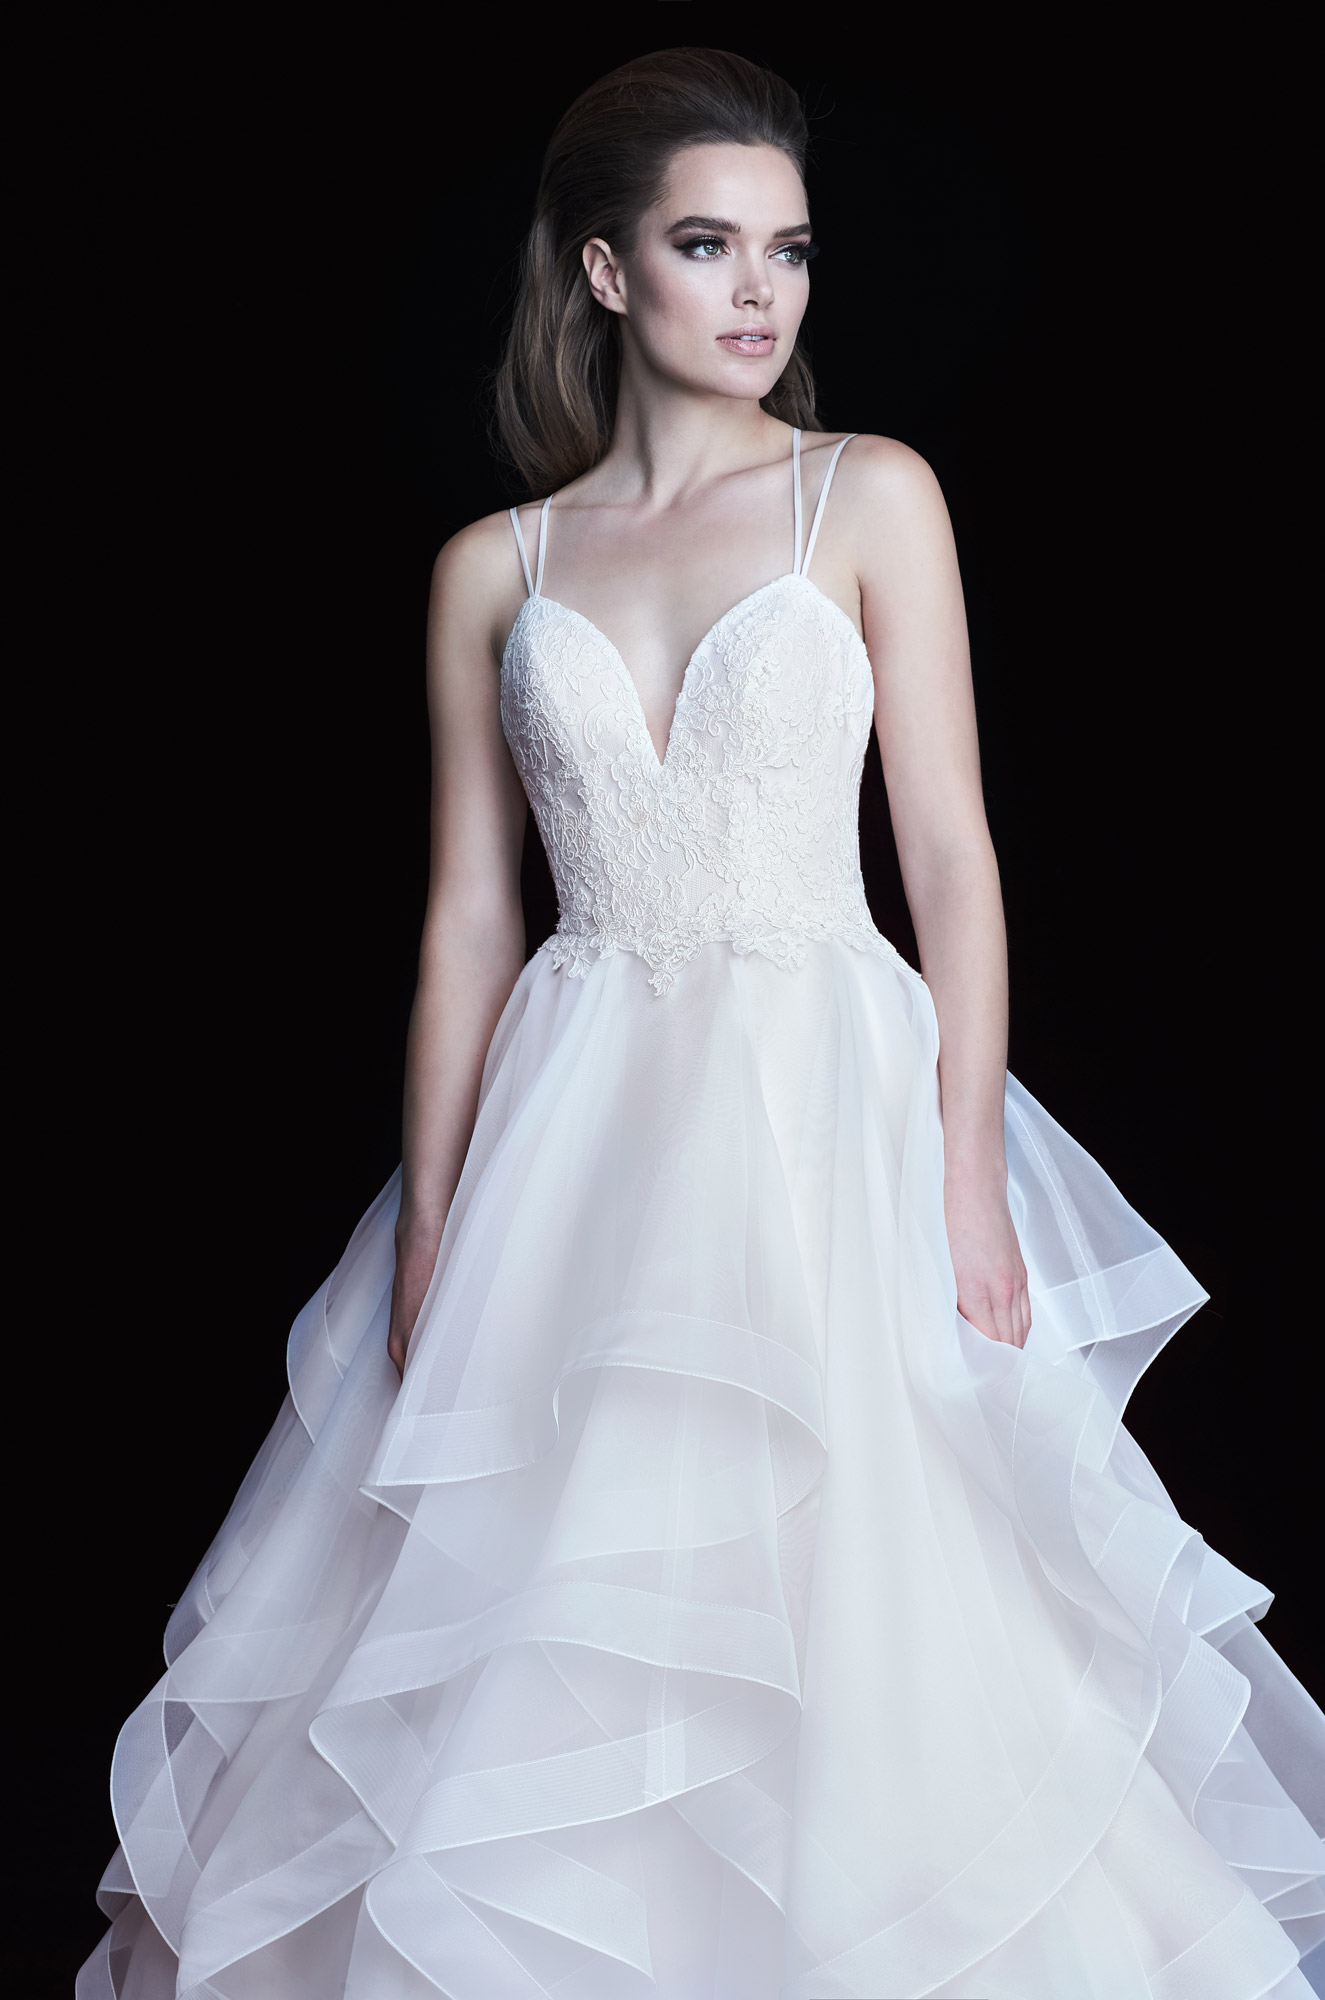 Multi-Layered Tiers Wedding Dress - Style #4758 | Paloma Blanca